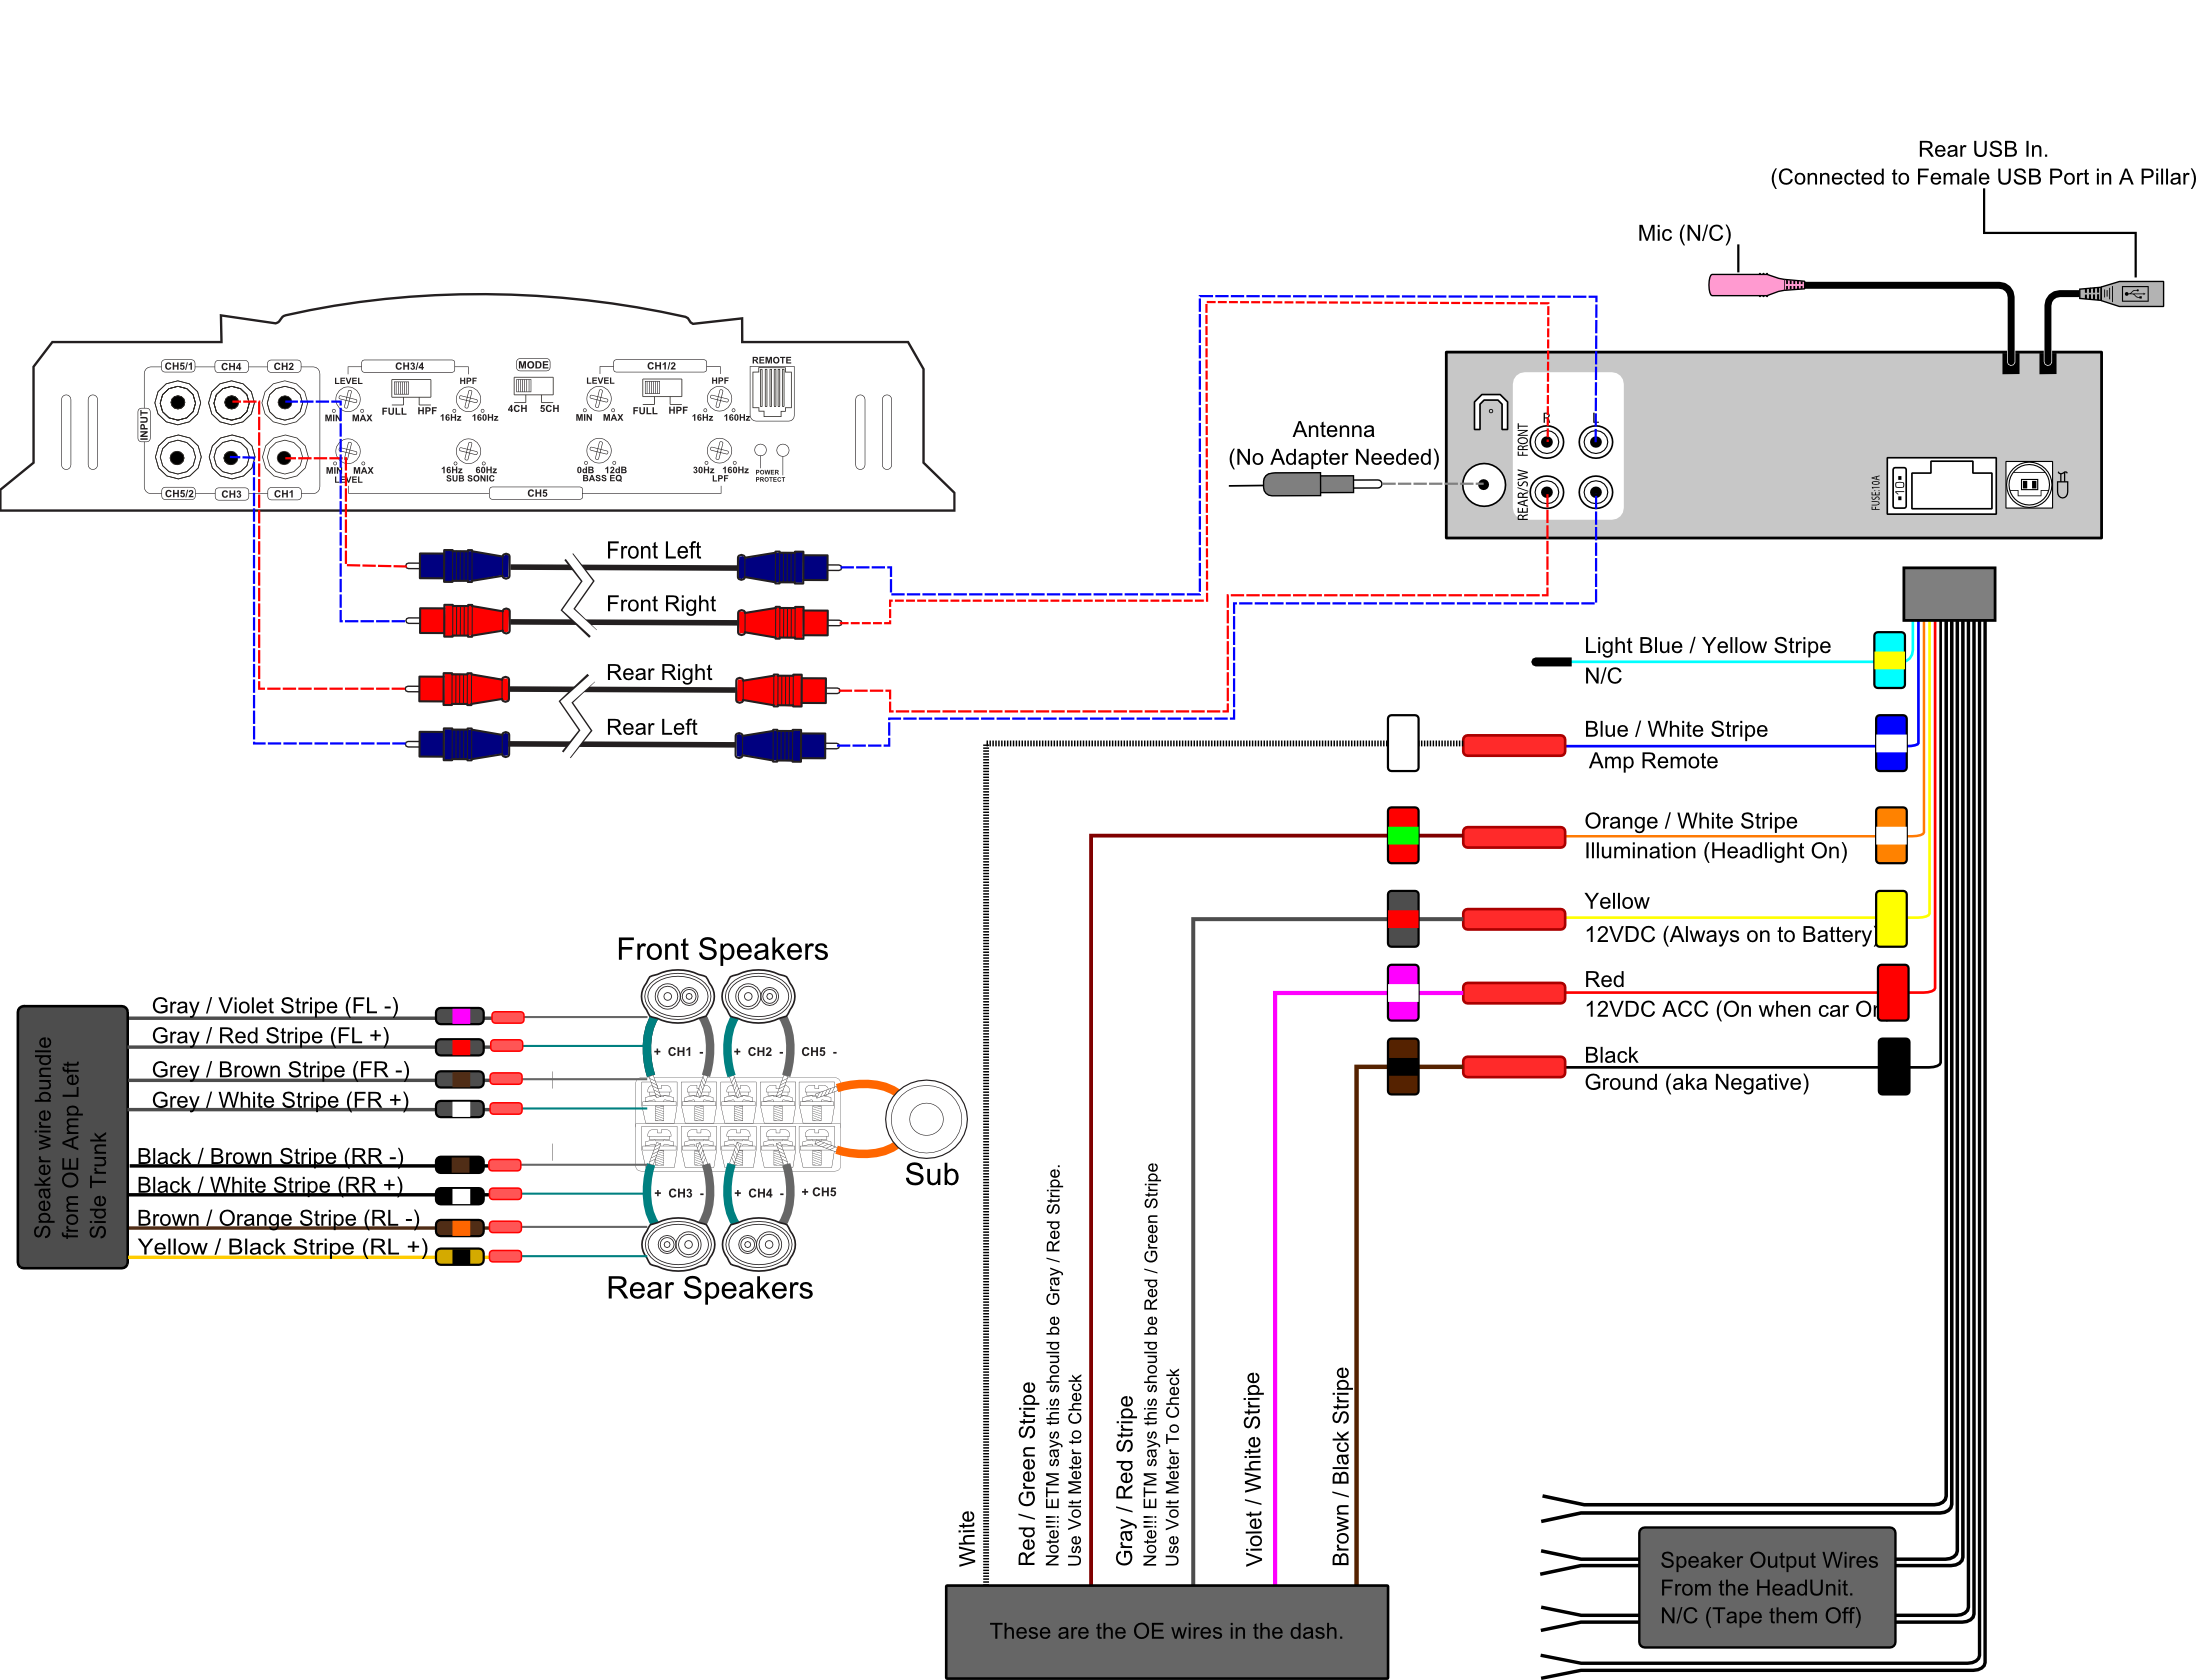 Wiring Diagram For Radio from www.vippng.com